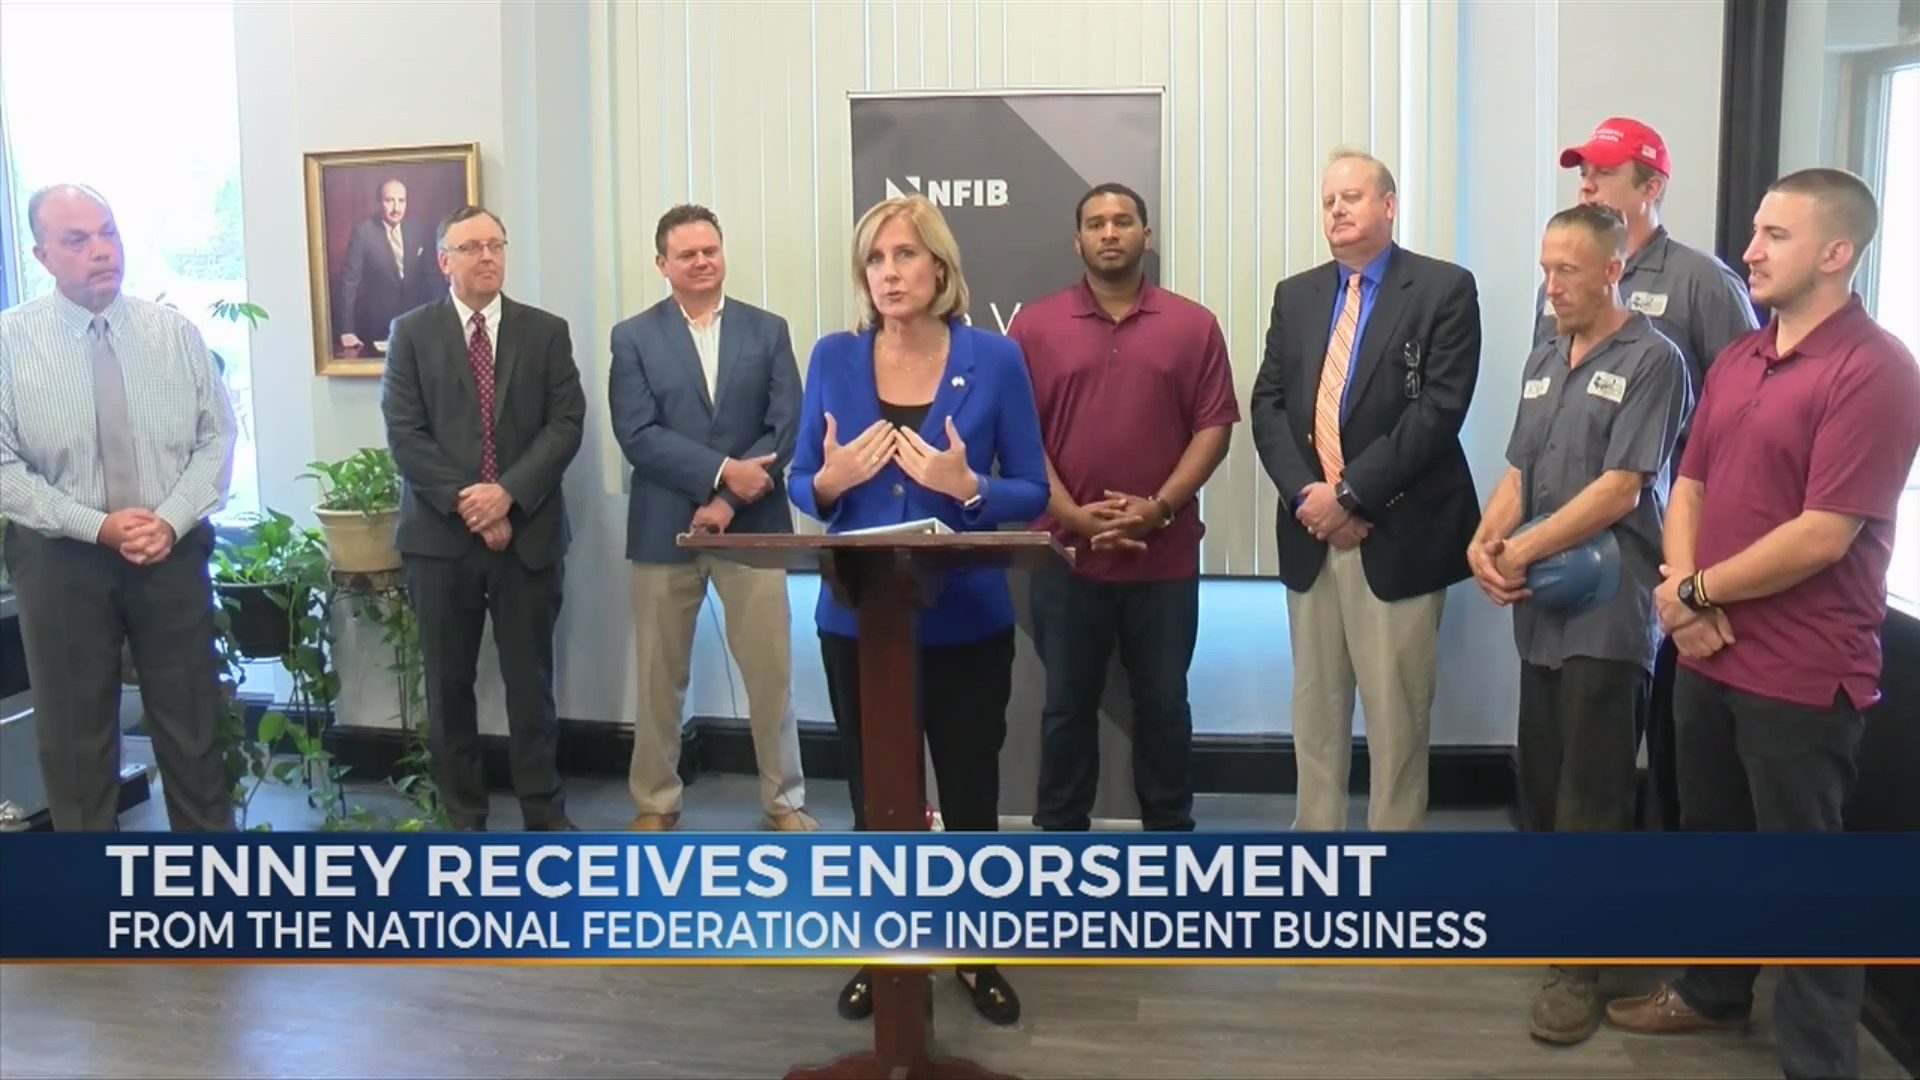 Tenney receives endorsement from NFIB